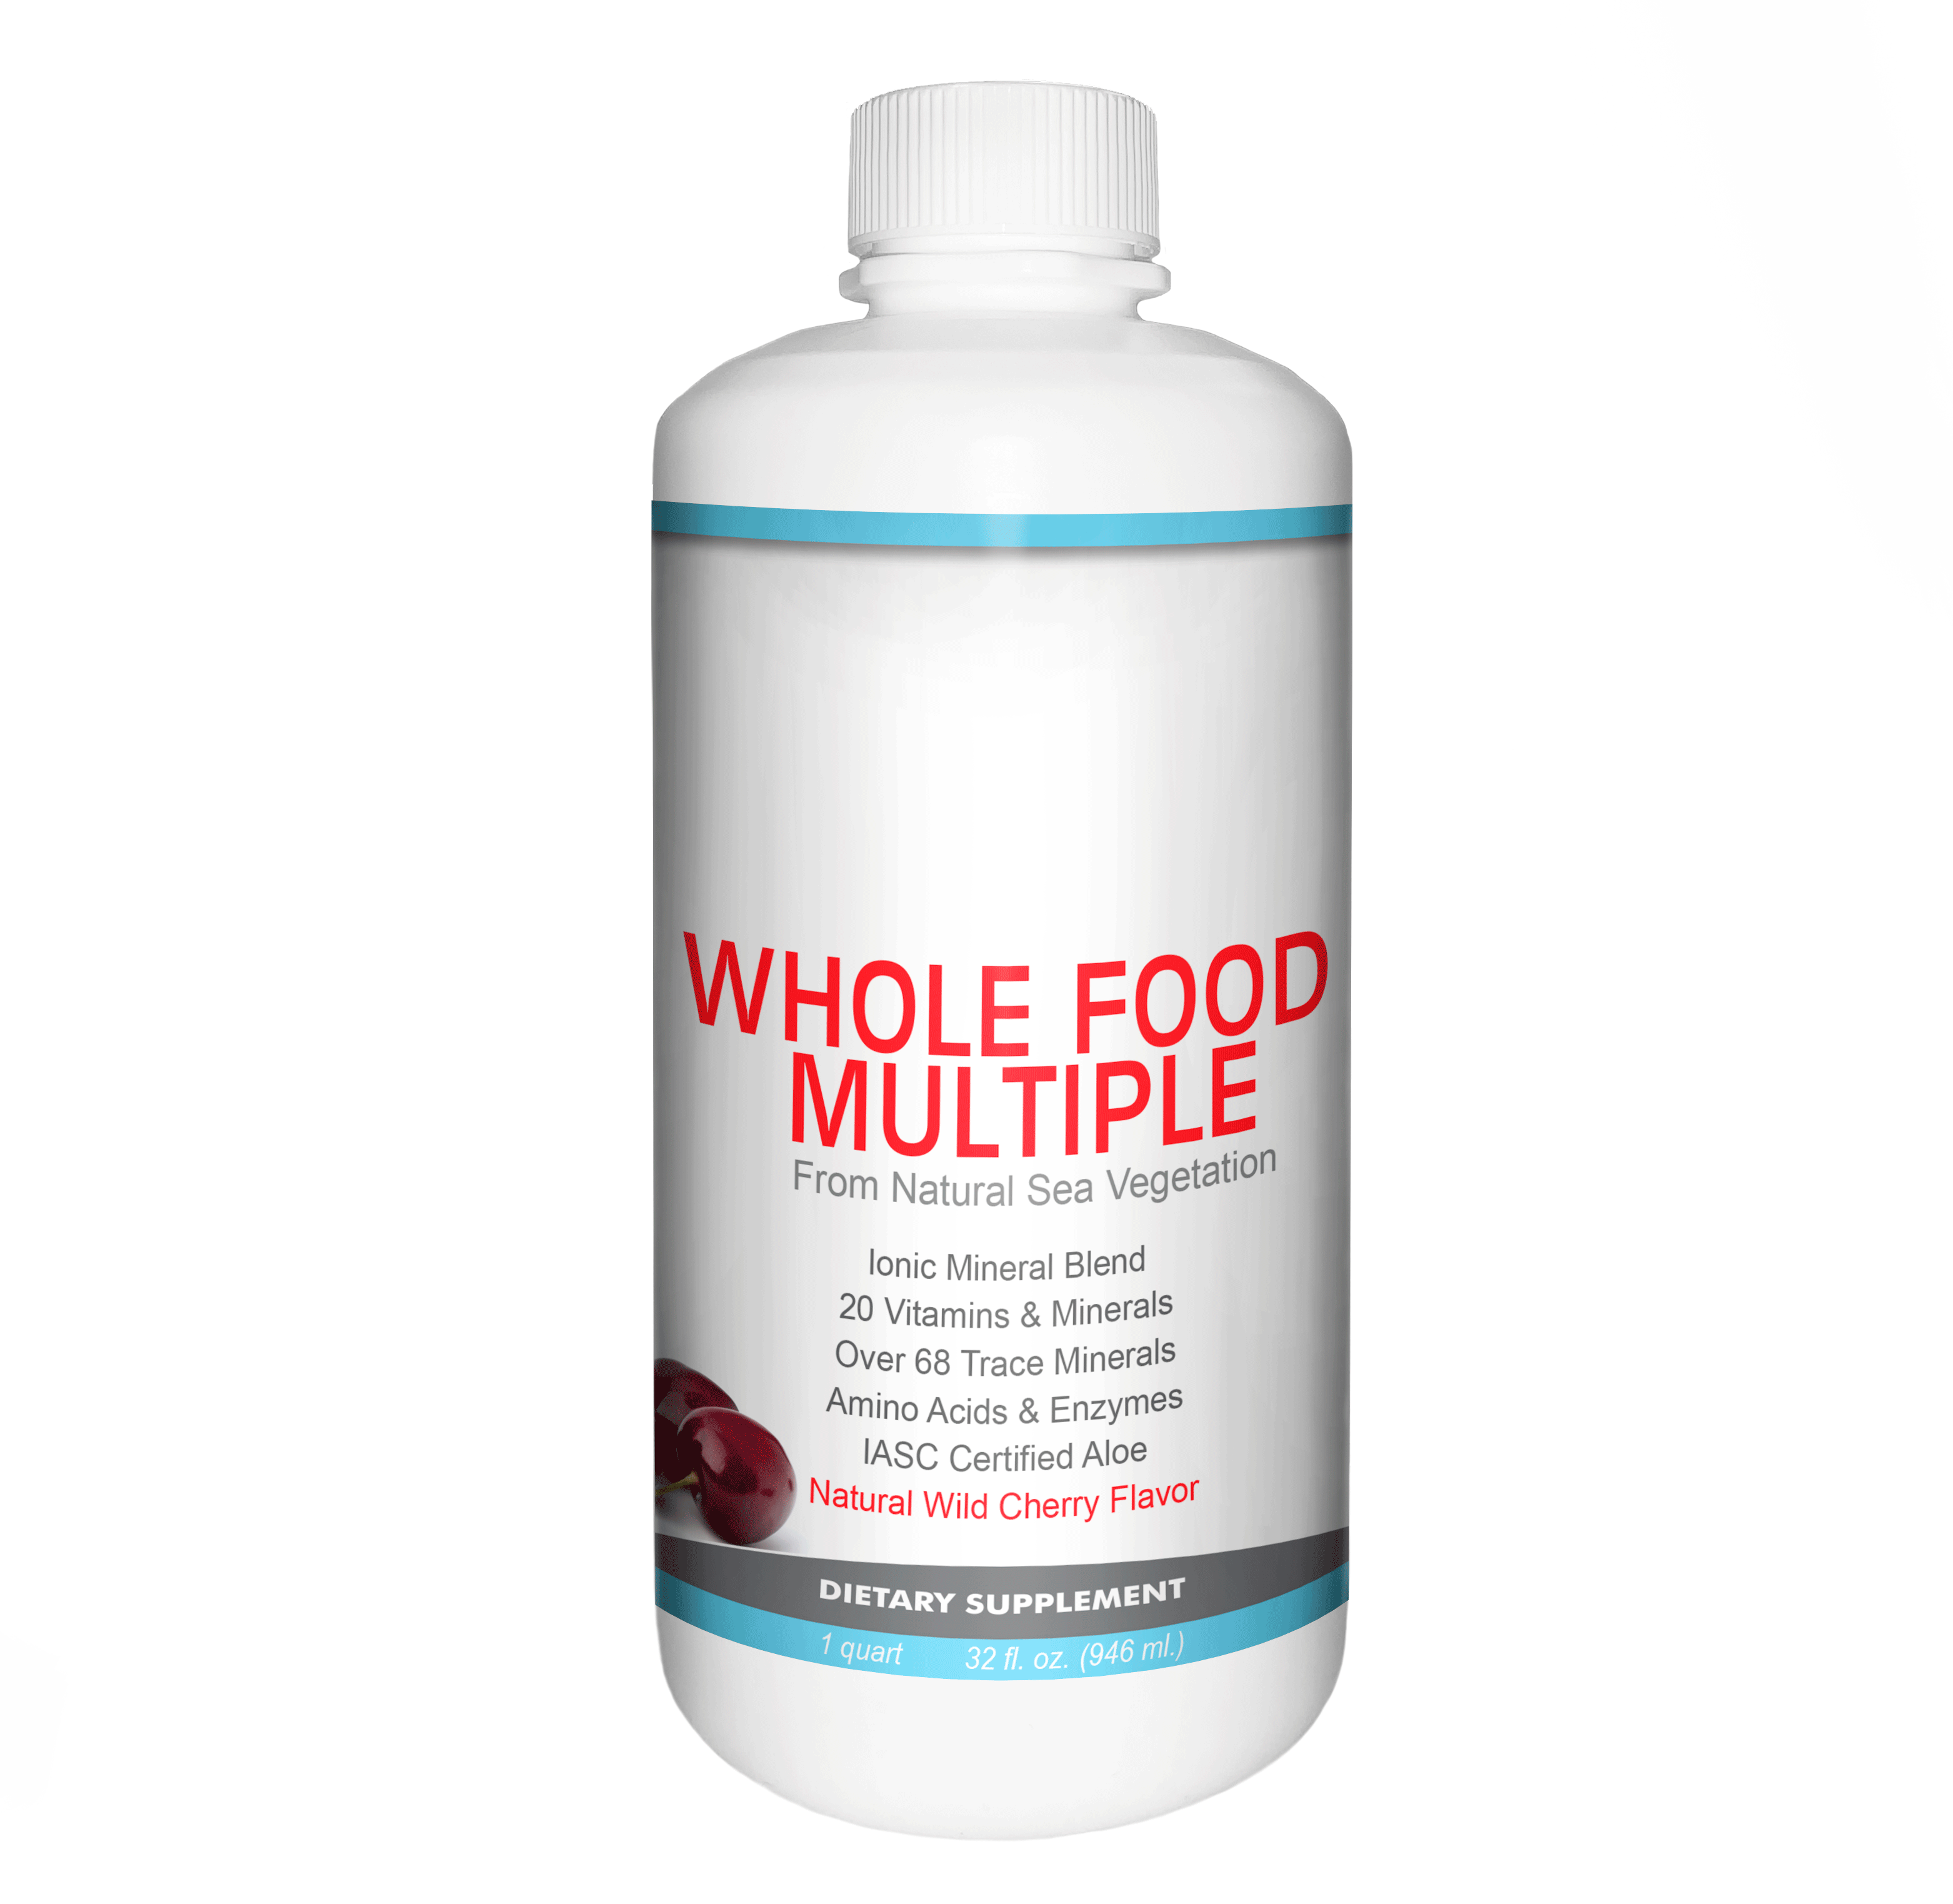 bottle of whole food multiple